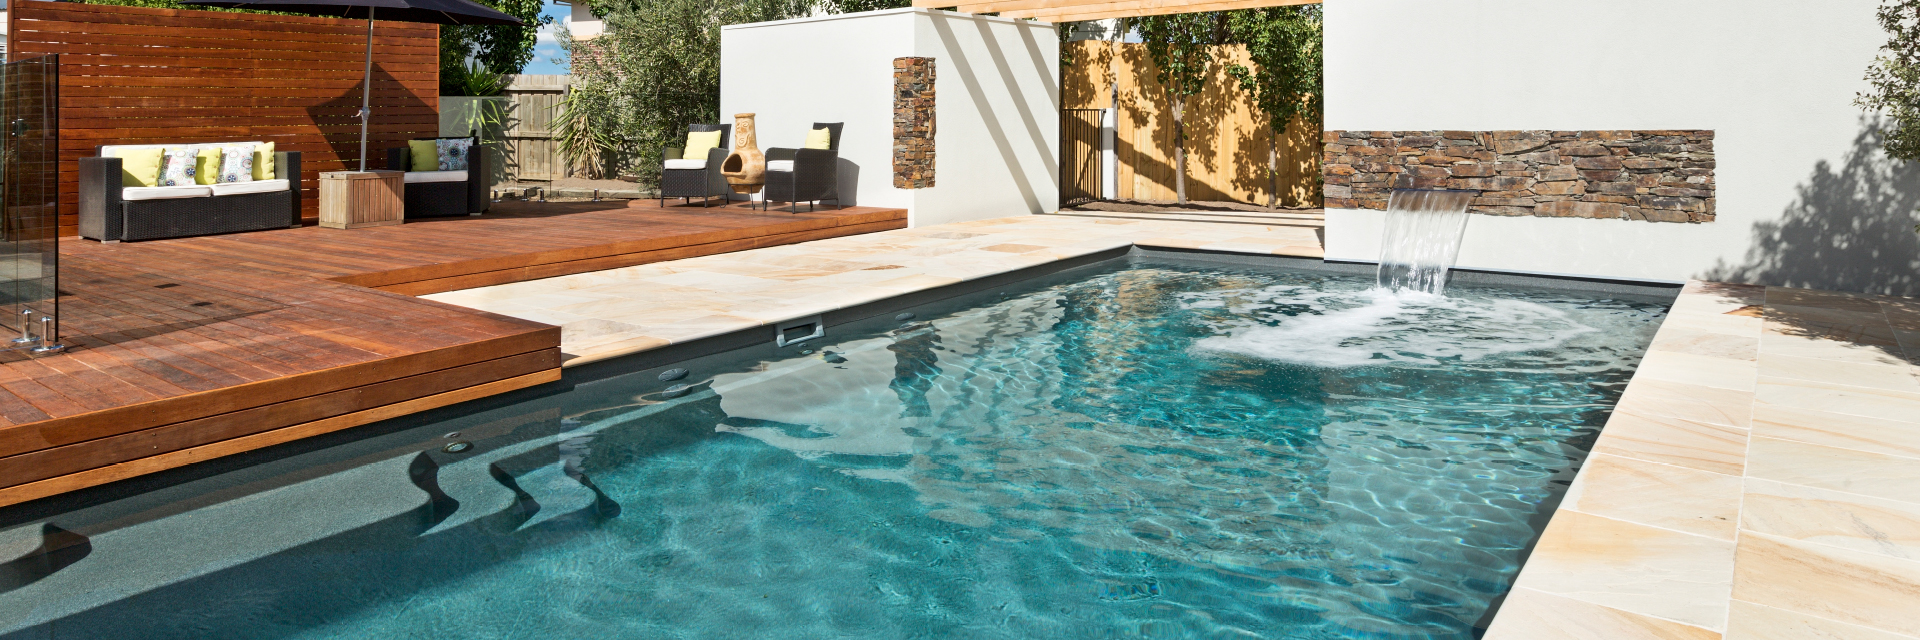 Swimming Pools | Fibreglass Pools | Inground Pools | Compass Pools ...